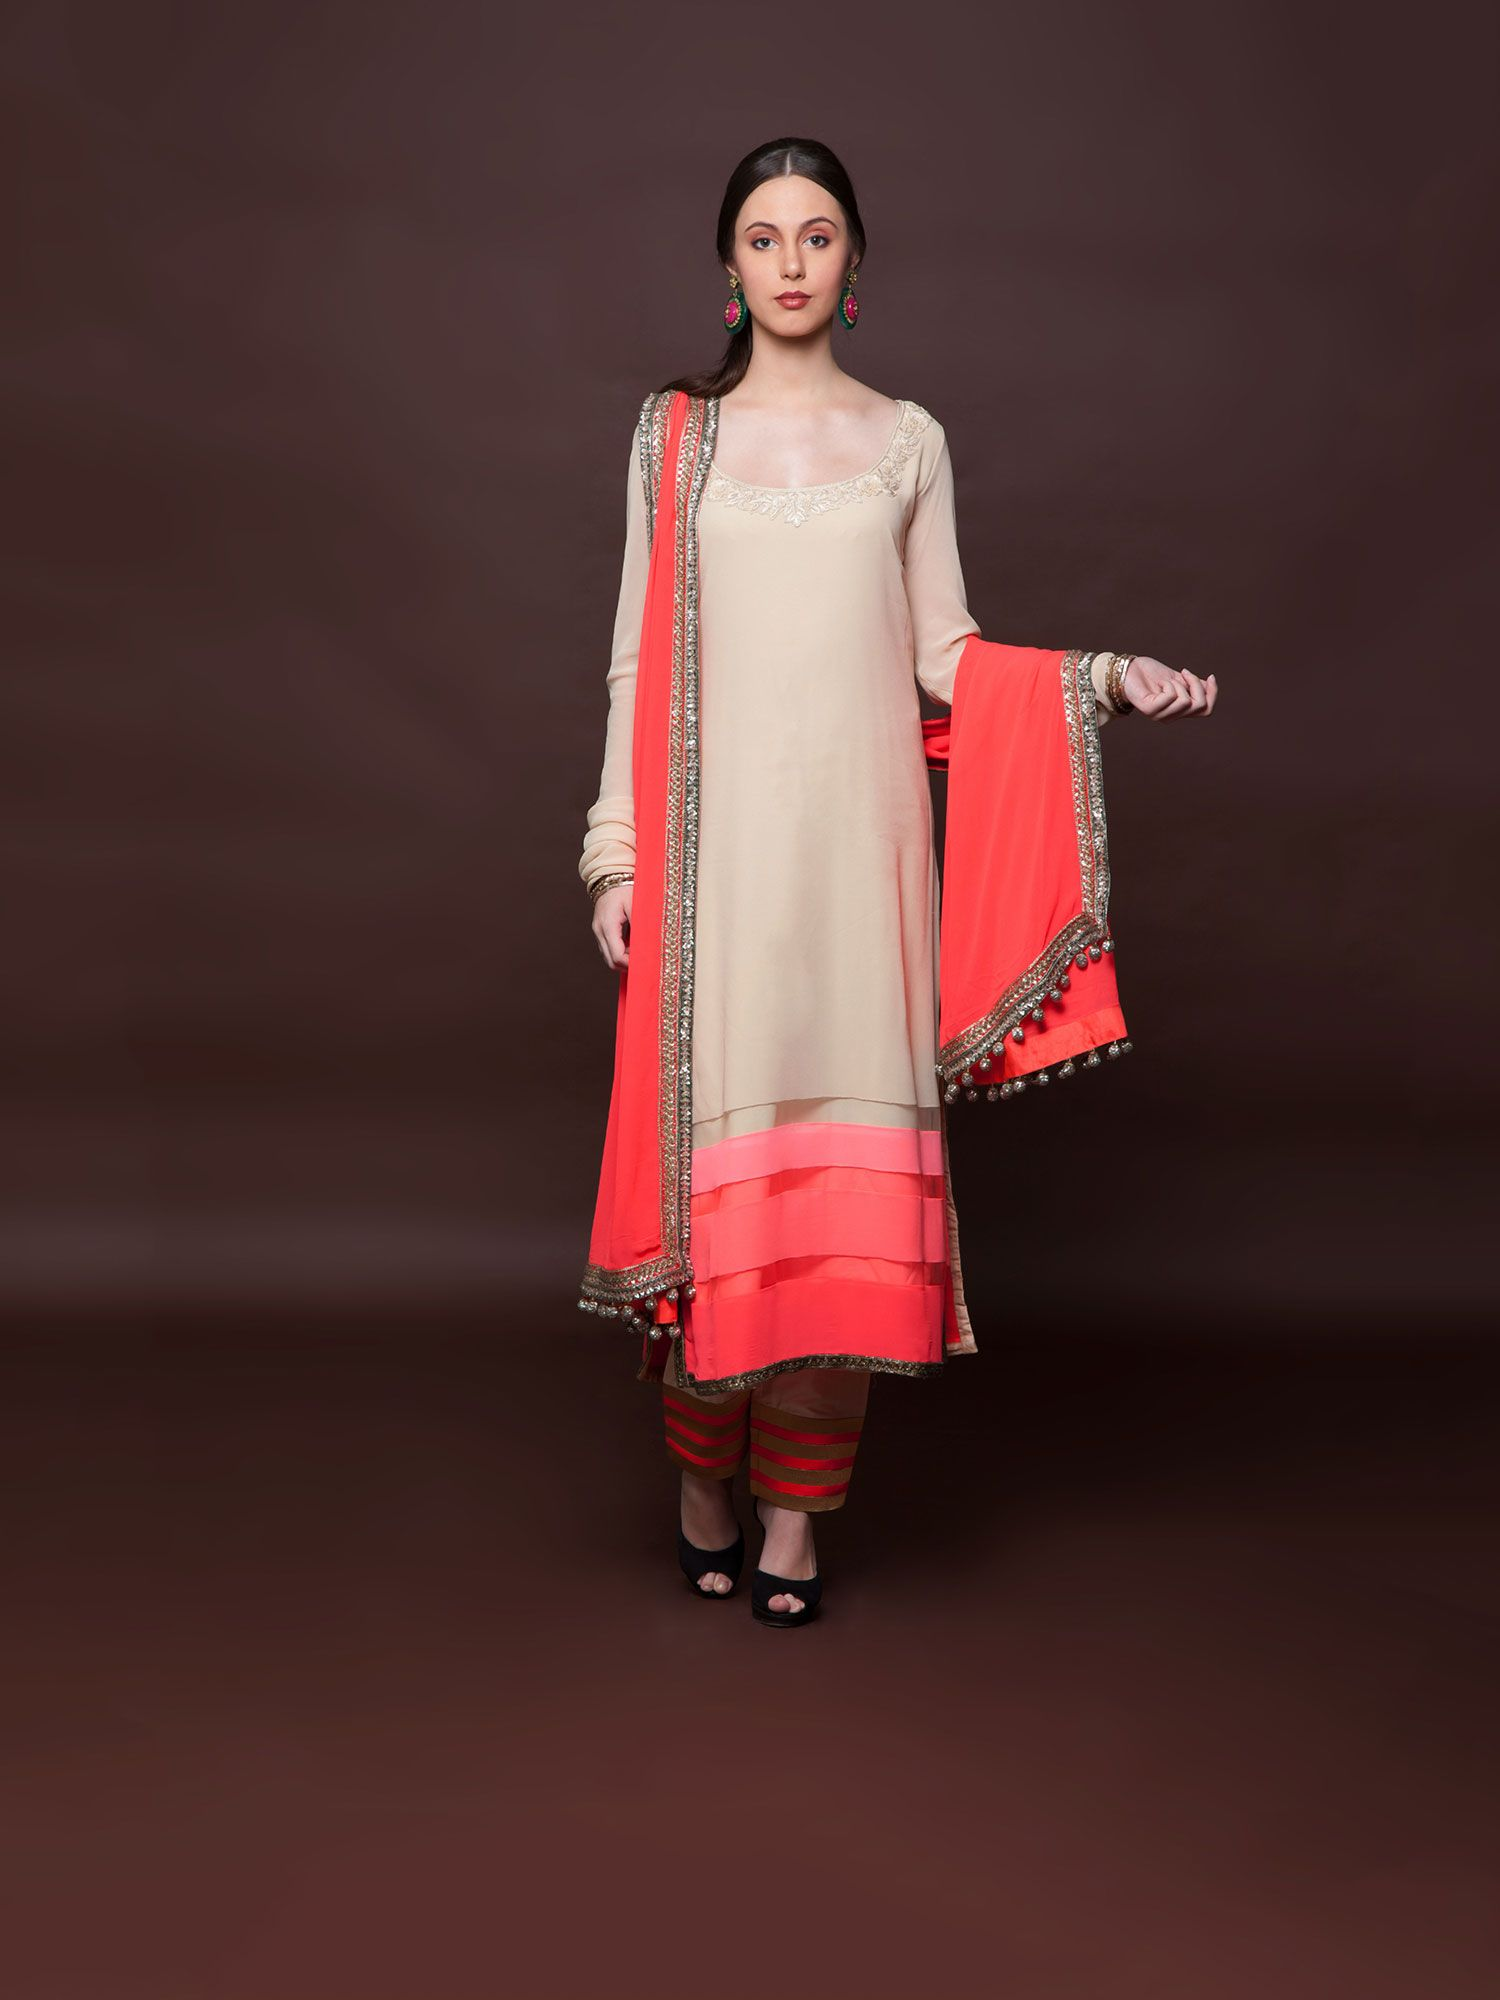 014 Essay On My Favourite Dress Salwar Kameez Sensational Full